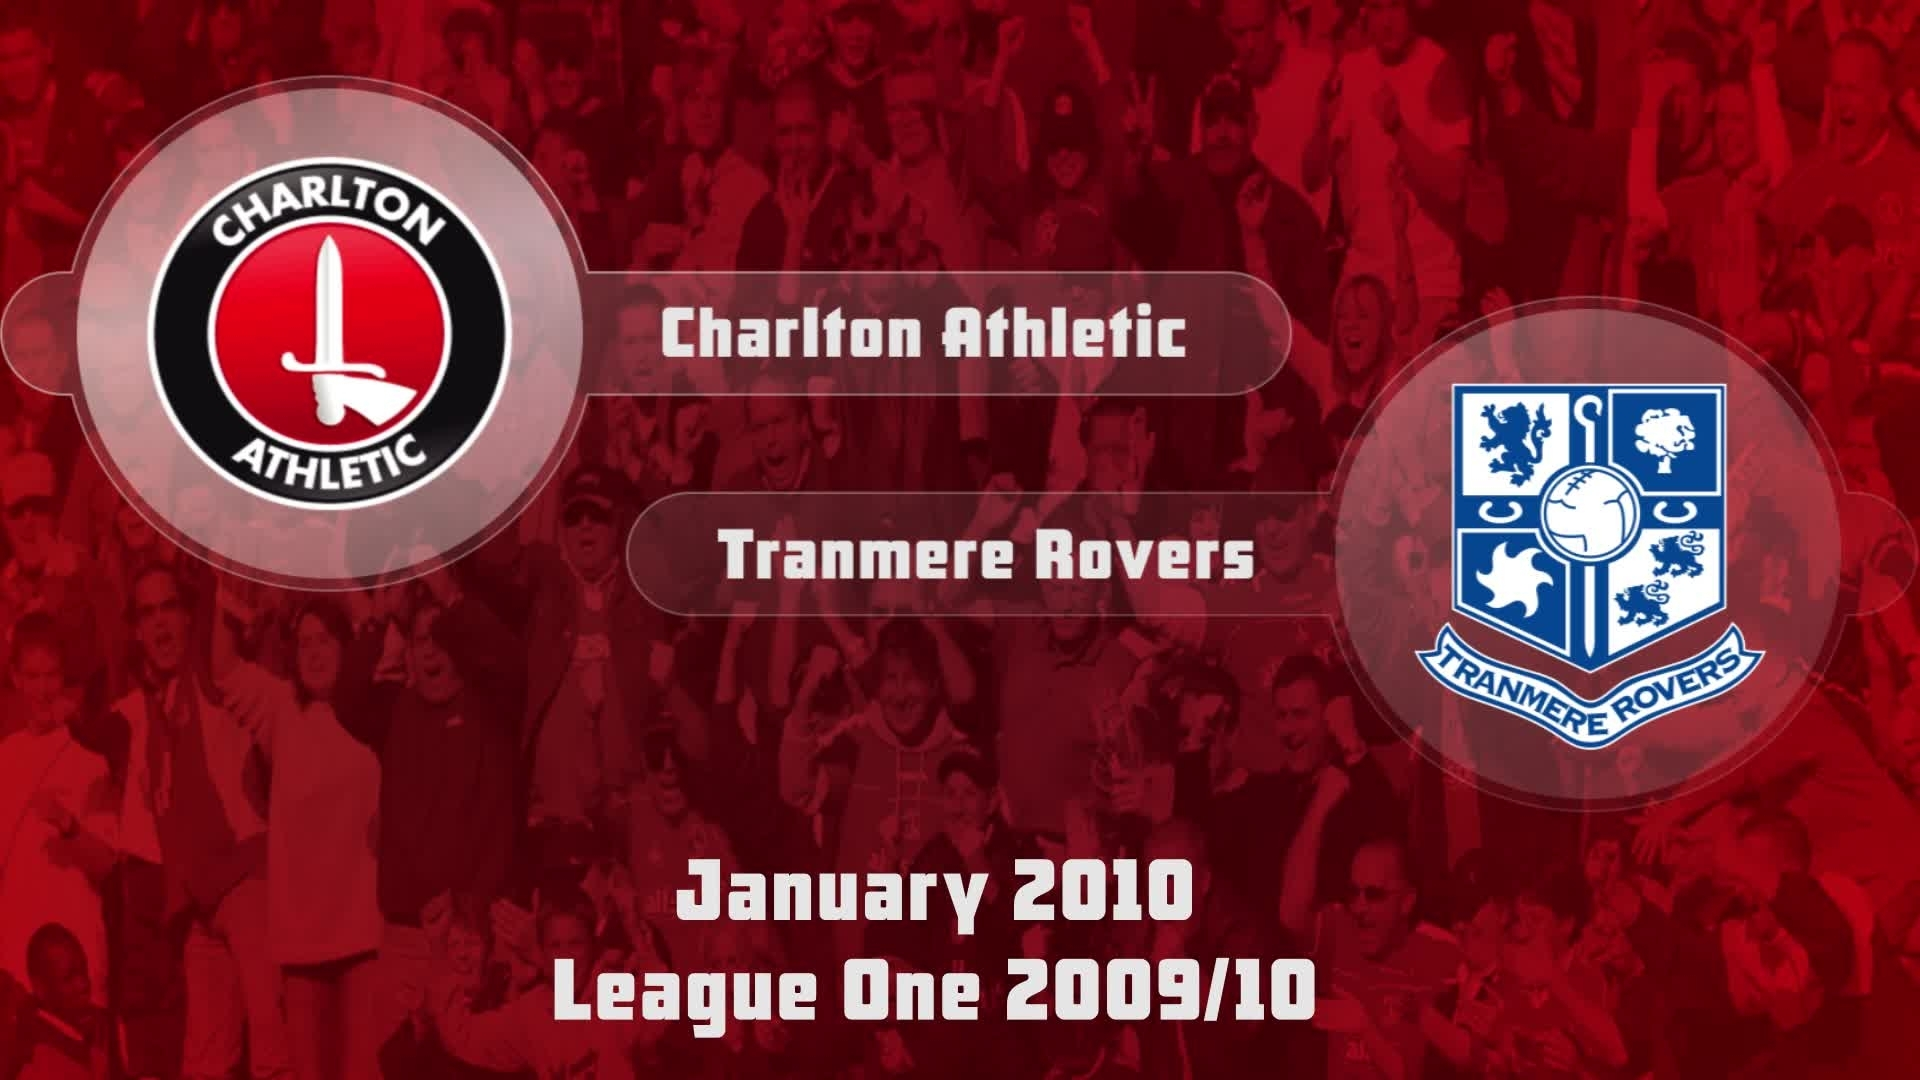 32 HIGHLIGHTS | Charlton 1 Tranmere 1 (Jan 2010)